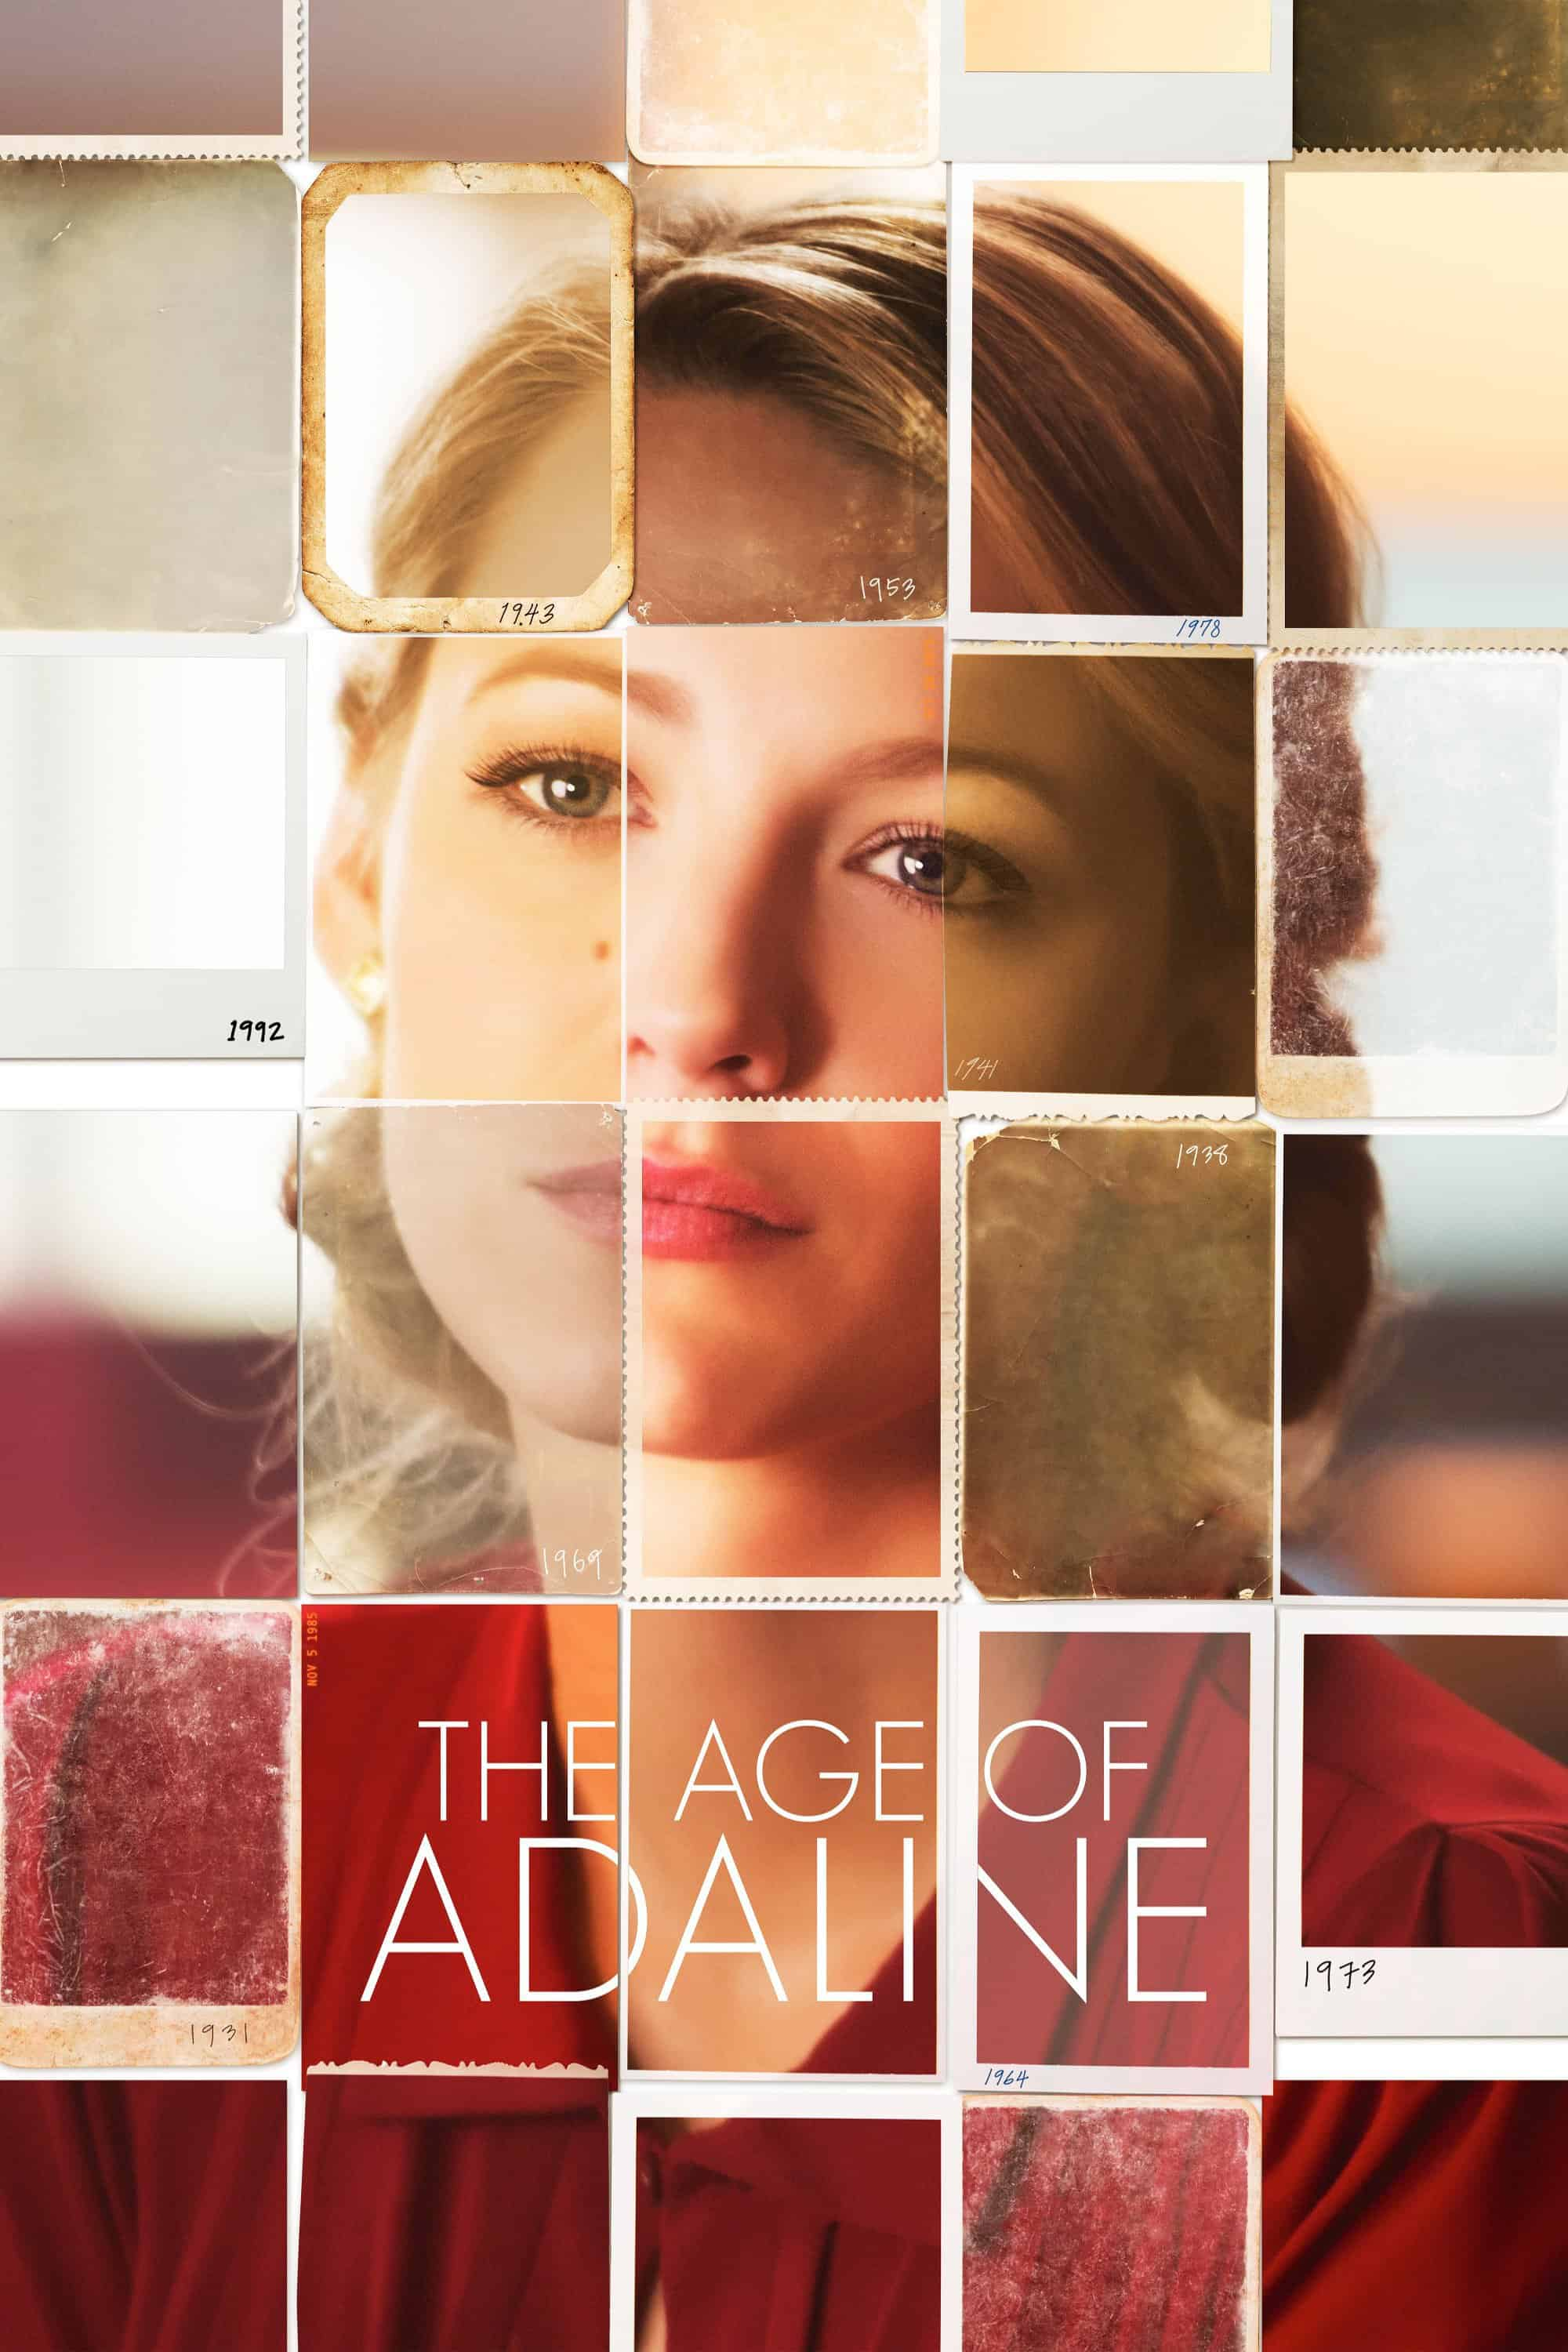 The Age of Adaline, 2015